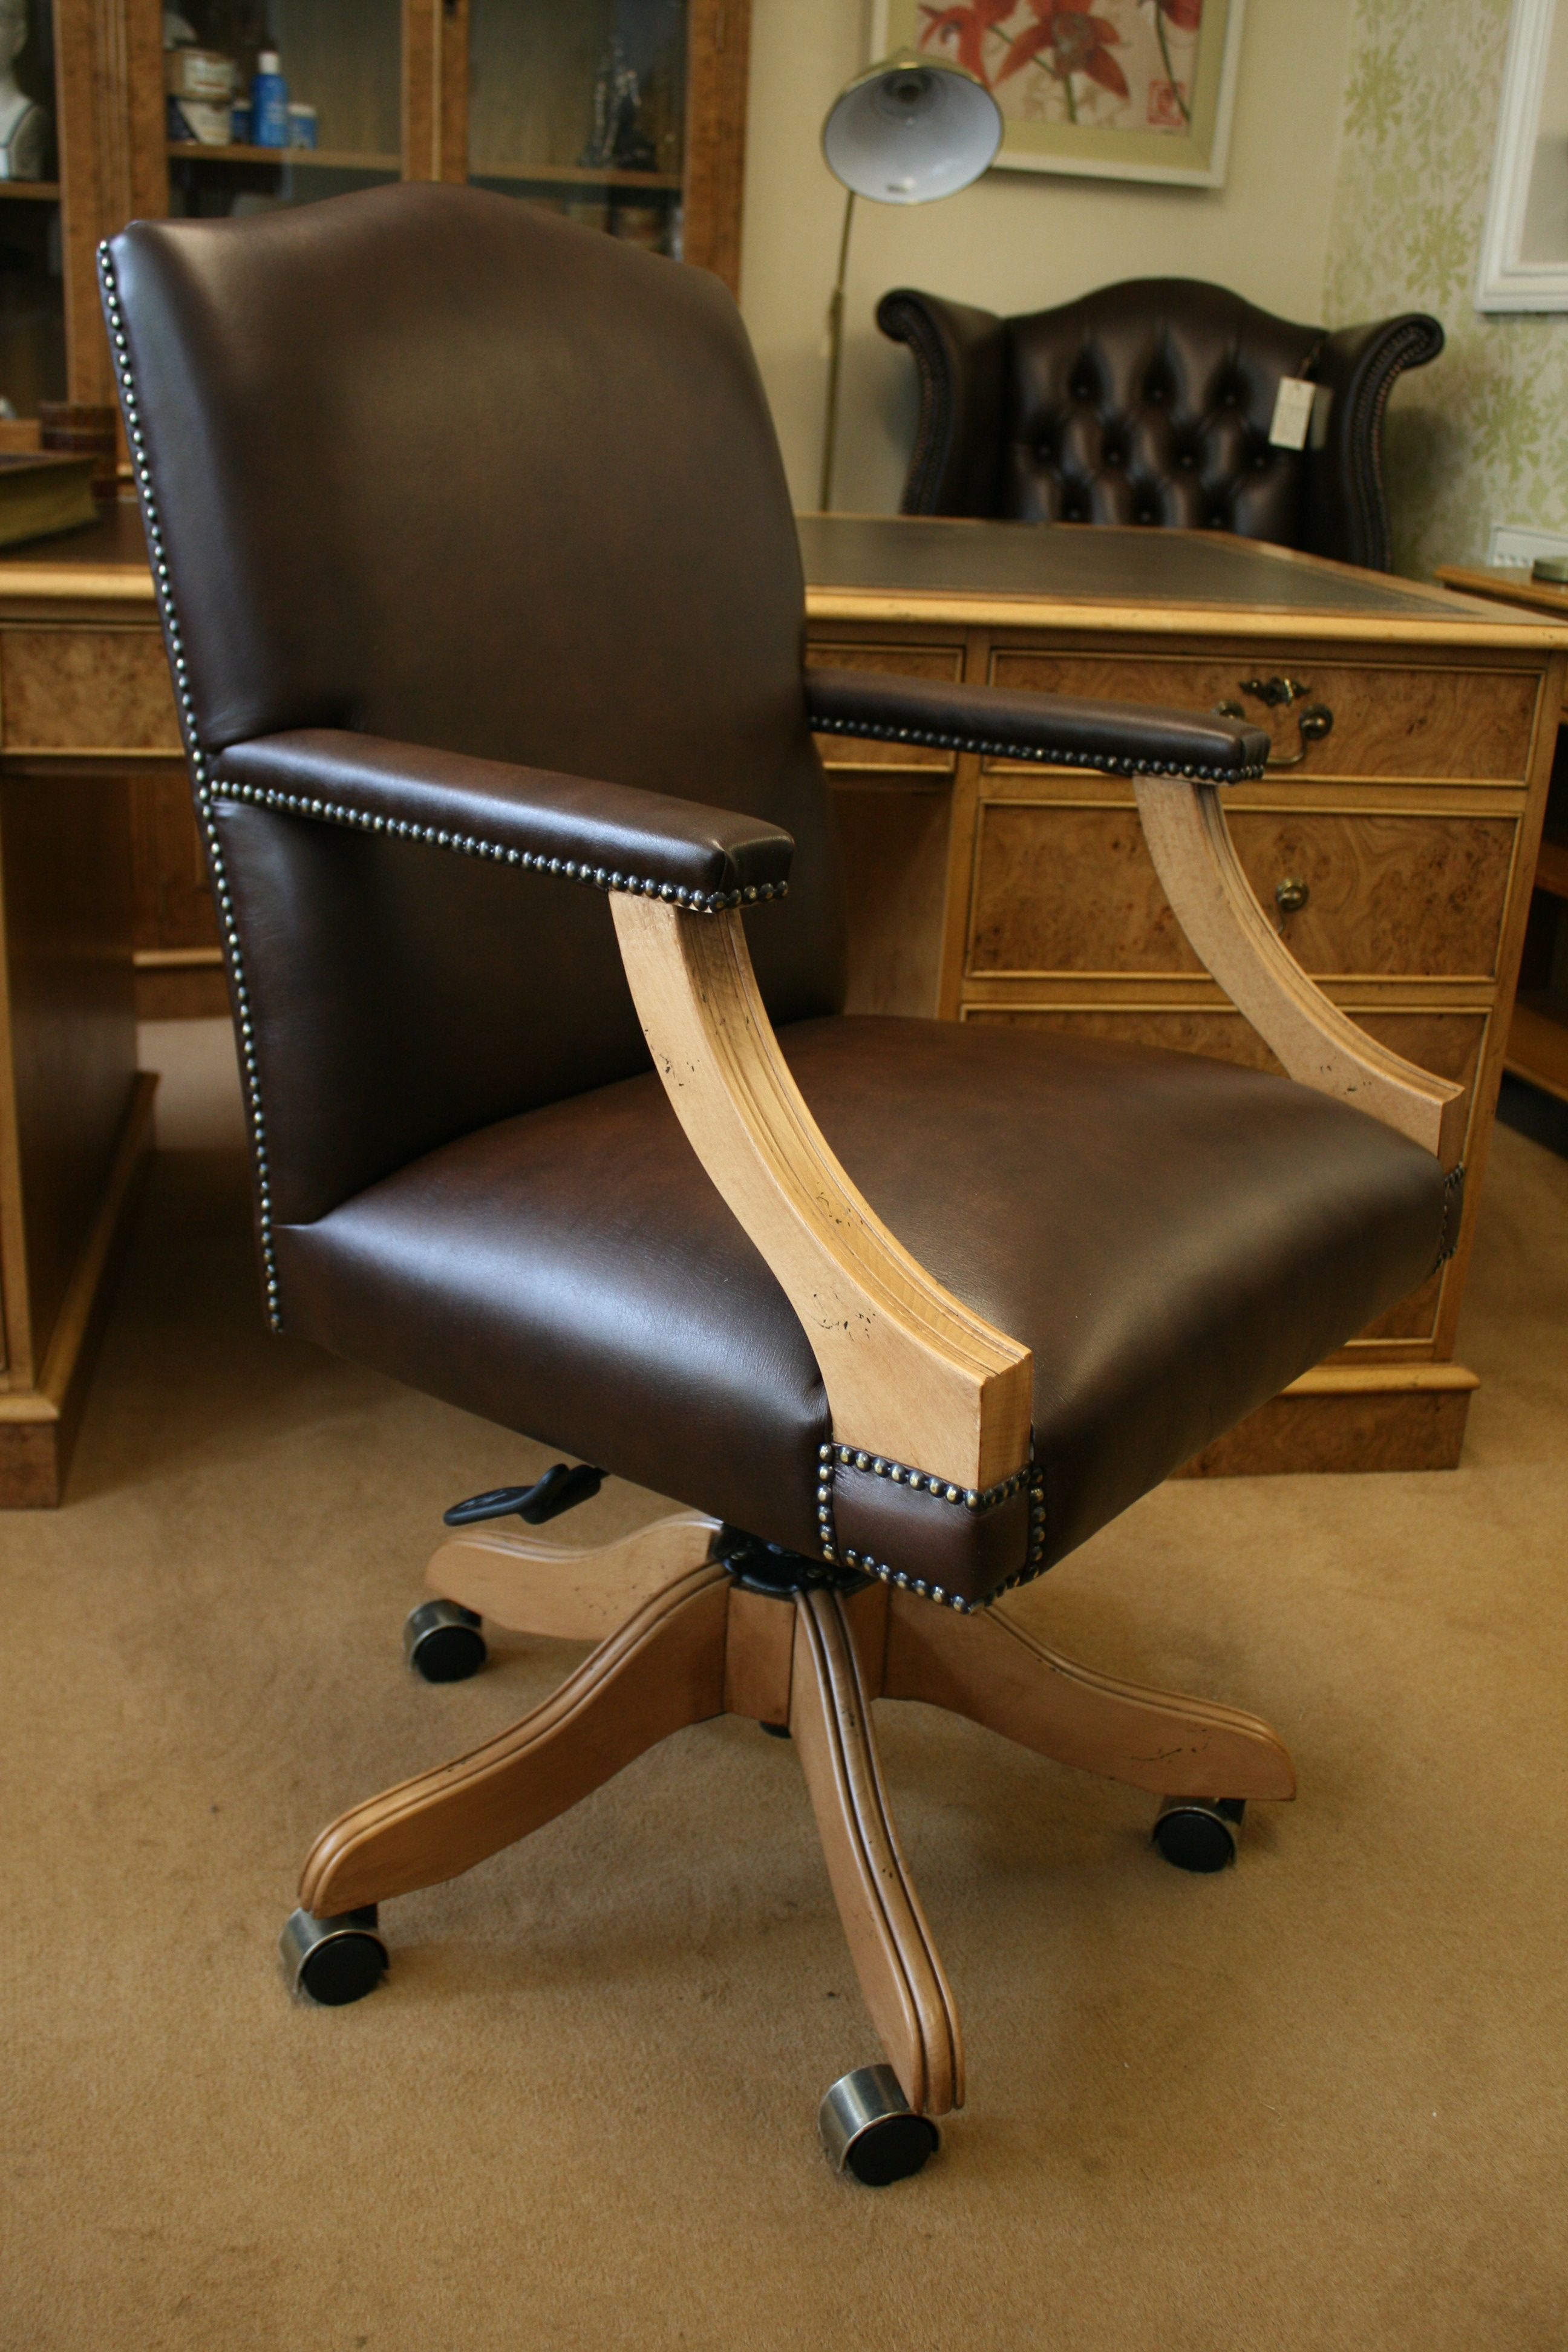 A Gainsborough Swivel Desk Chair Plain Brown Leather Upholstery